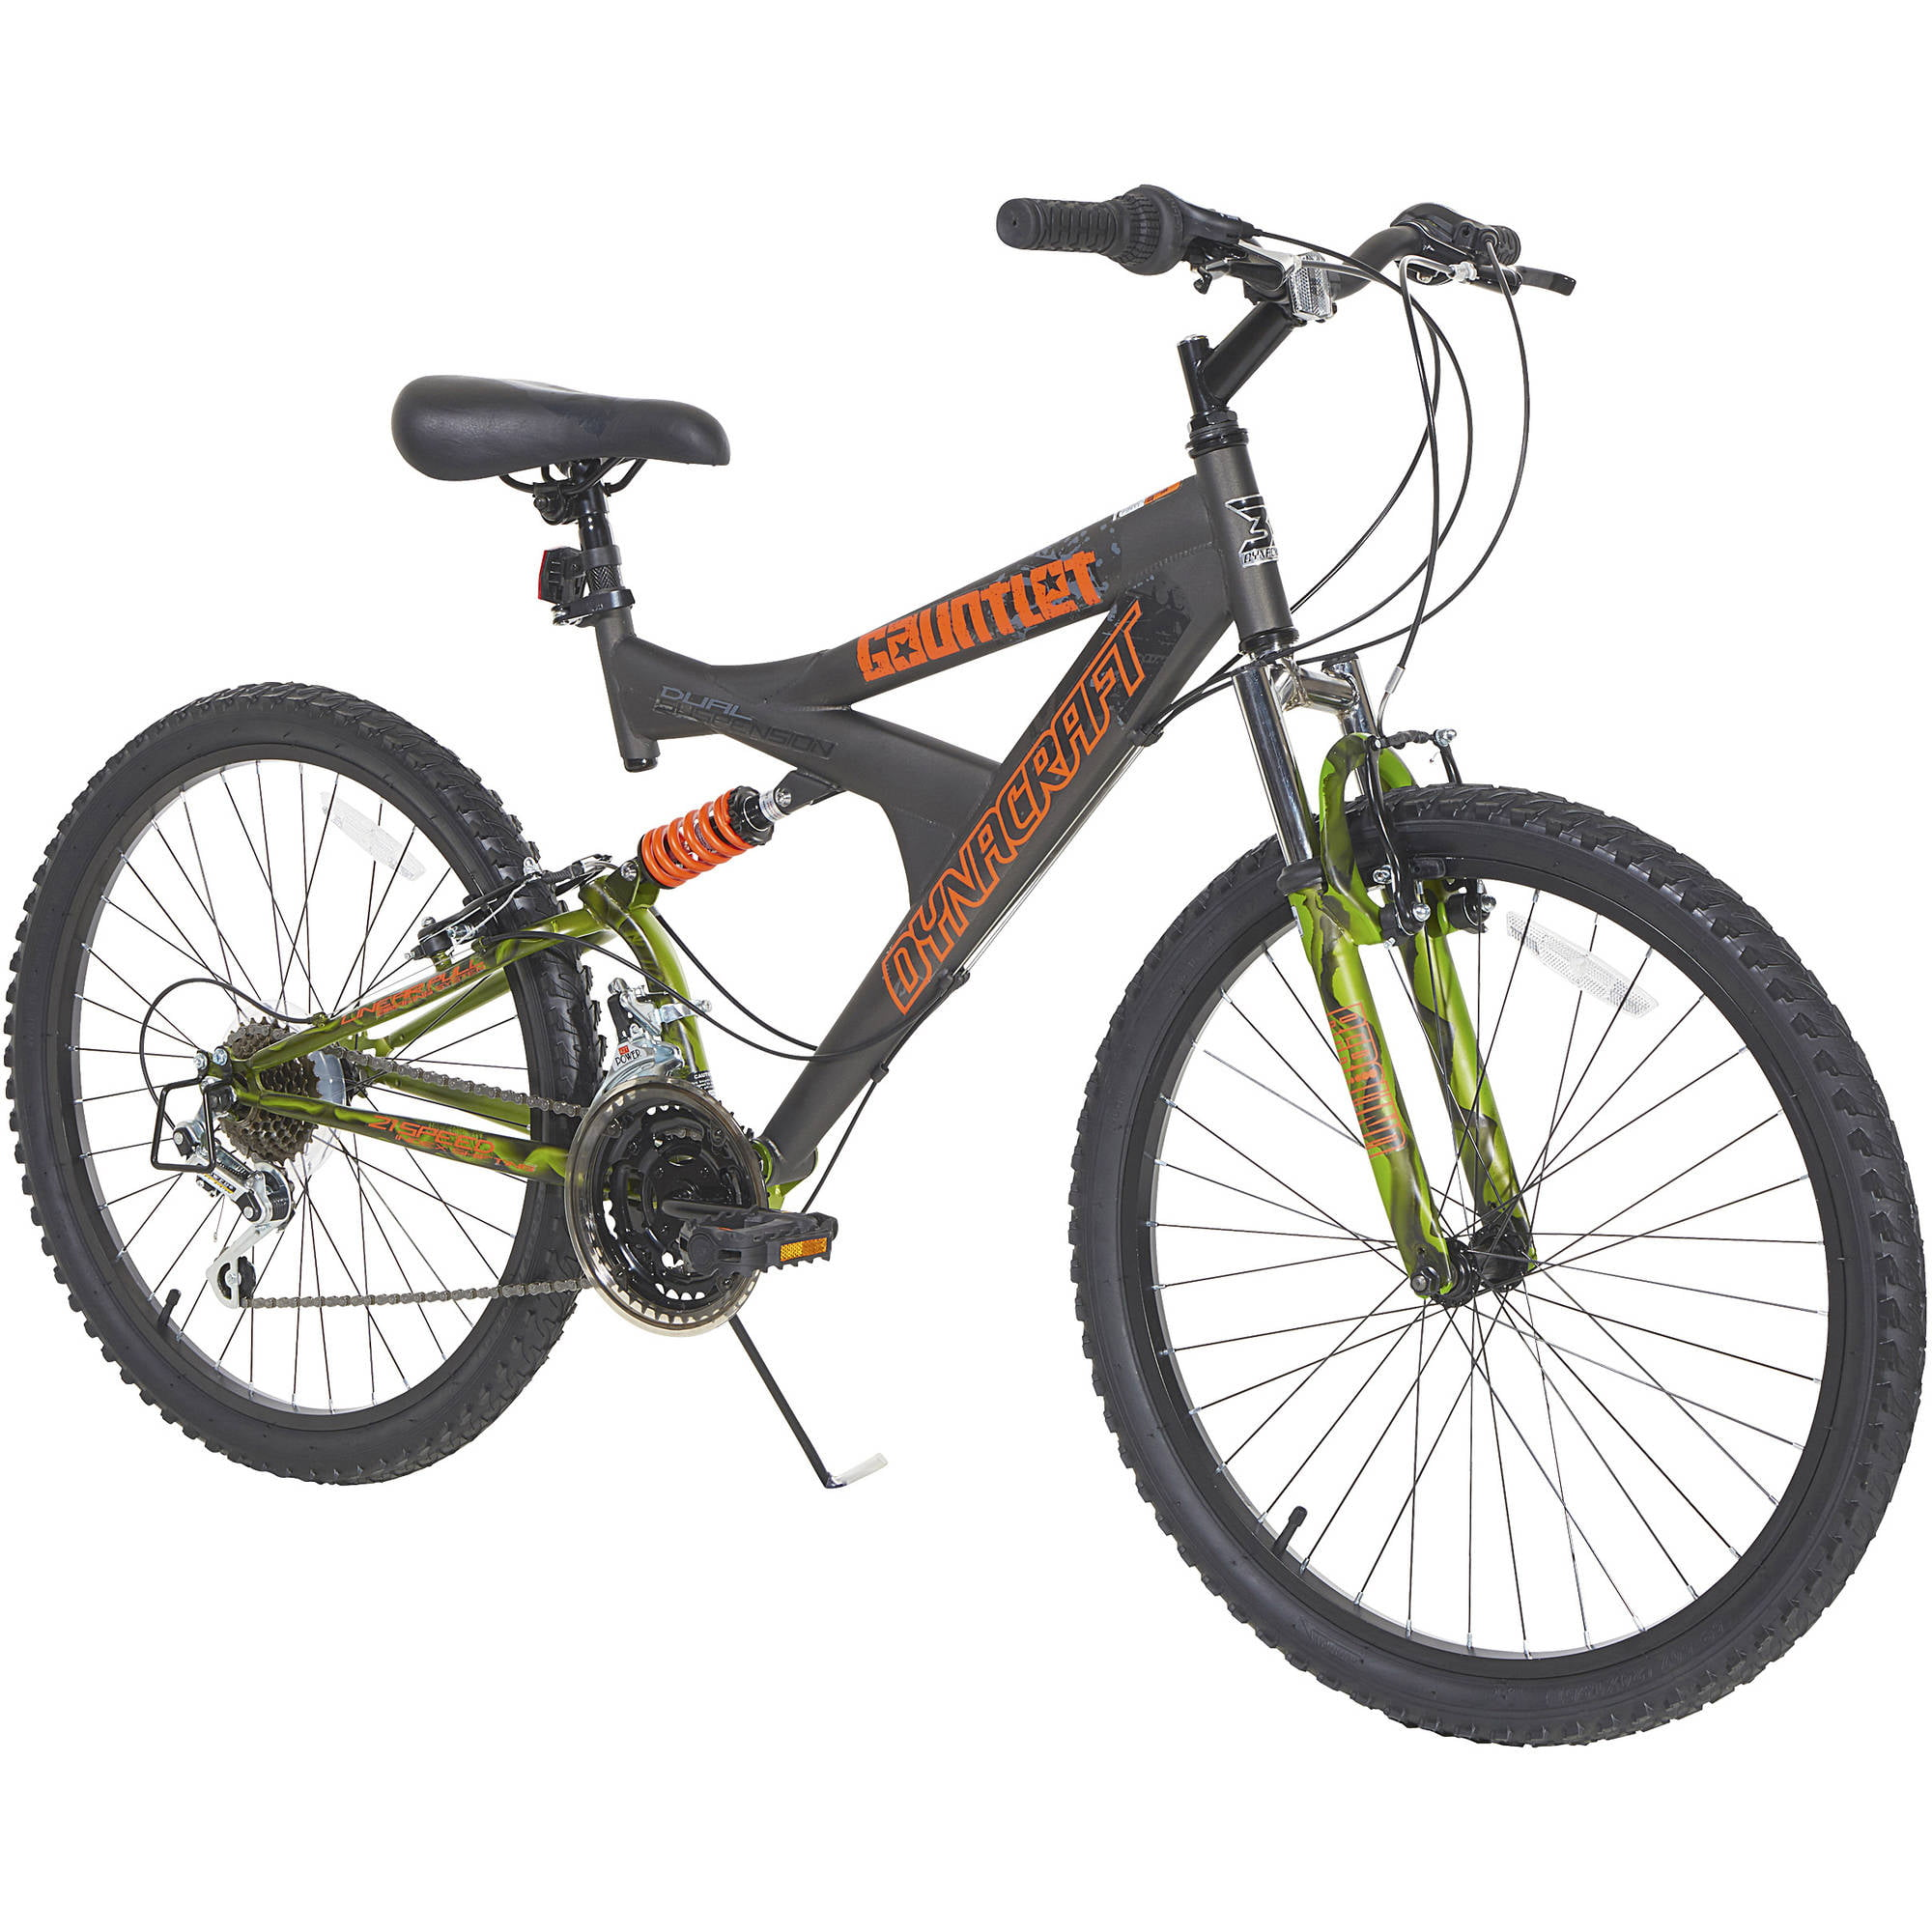 "24"" Dynacraft Gauntlet Boys' Mountain Bike by Generic"